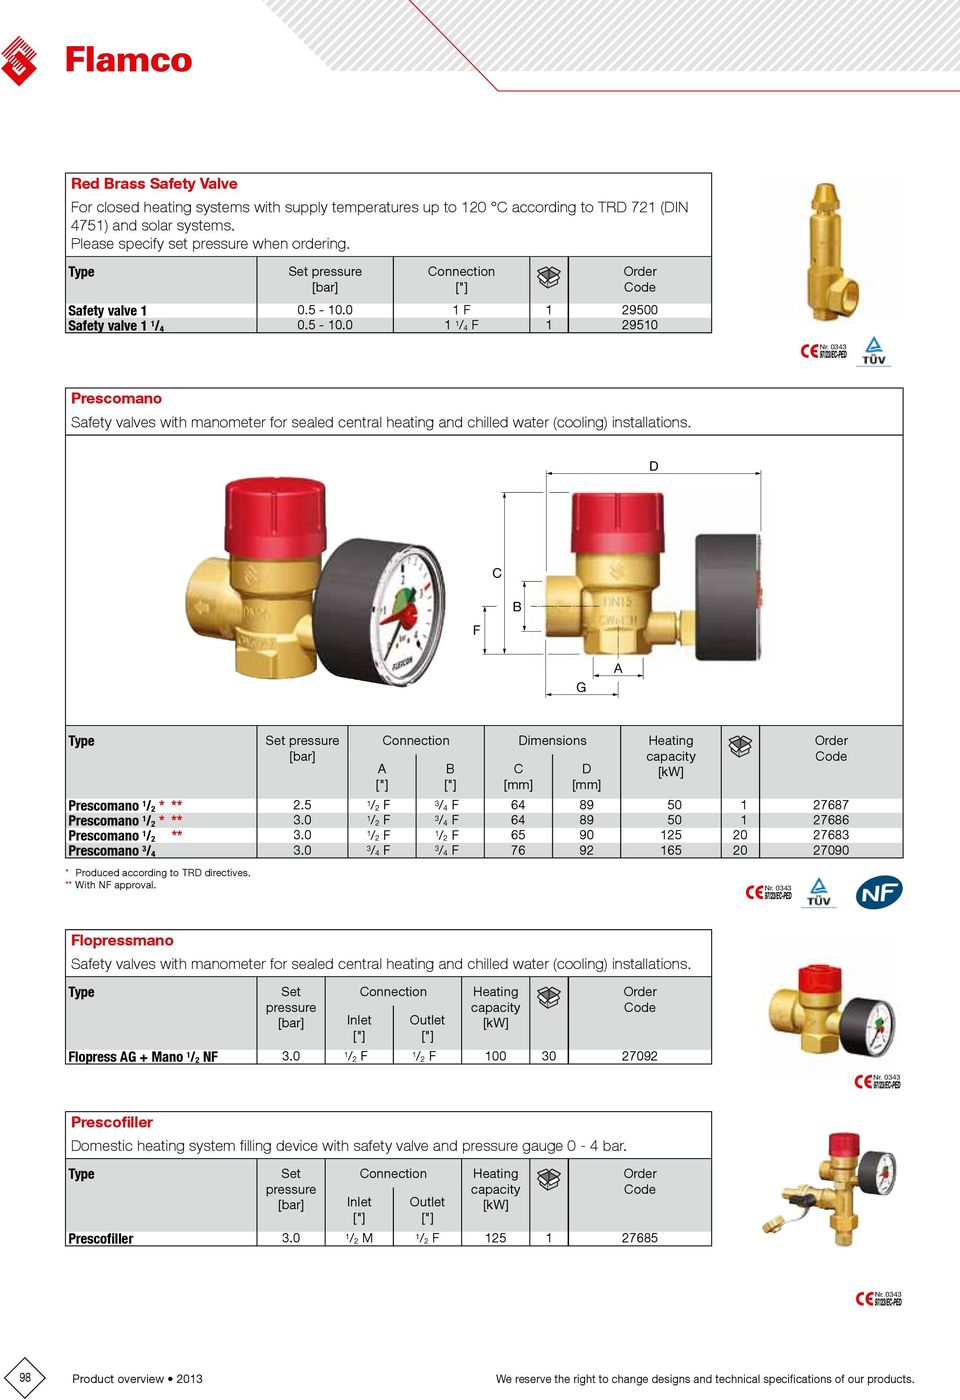 Accessories For Heating And Cooling Installations Pdf Thermostat Wiring Diagram Taco Val 04 Prescomano Safety Valves With Manometer Sealed Central Chilled Water